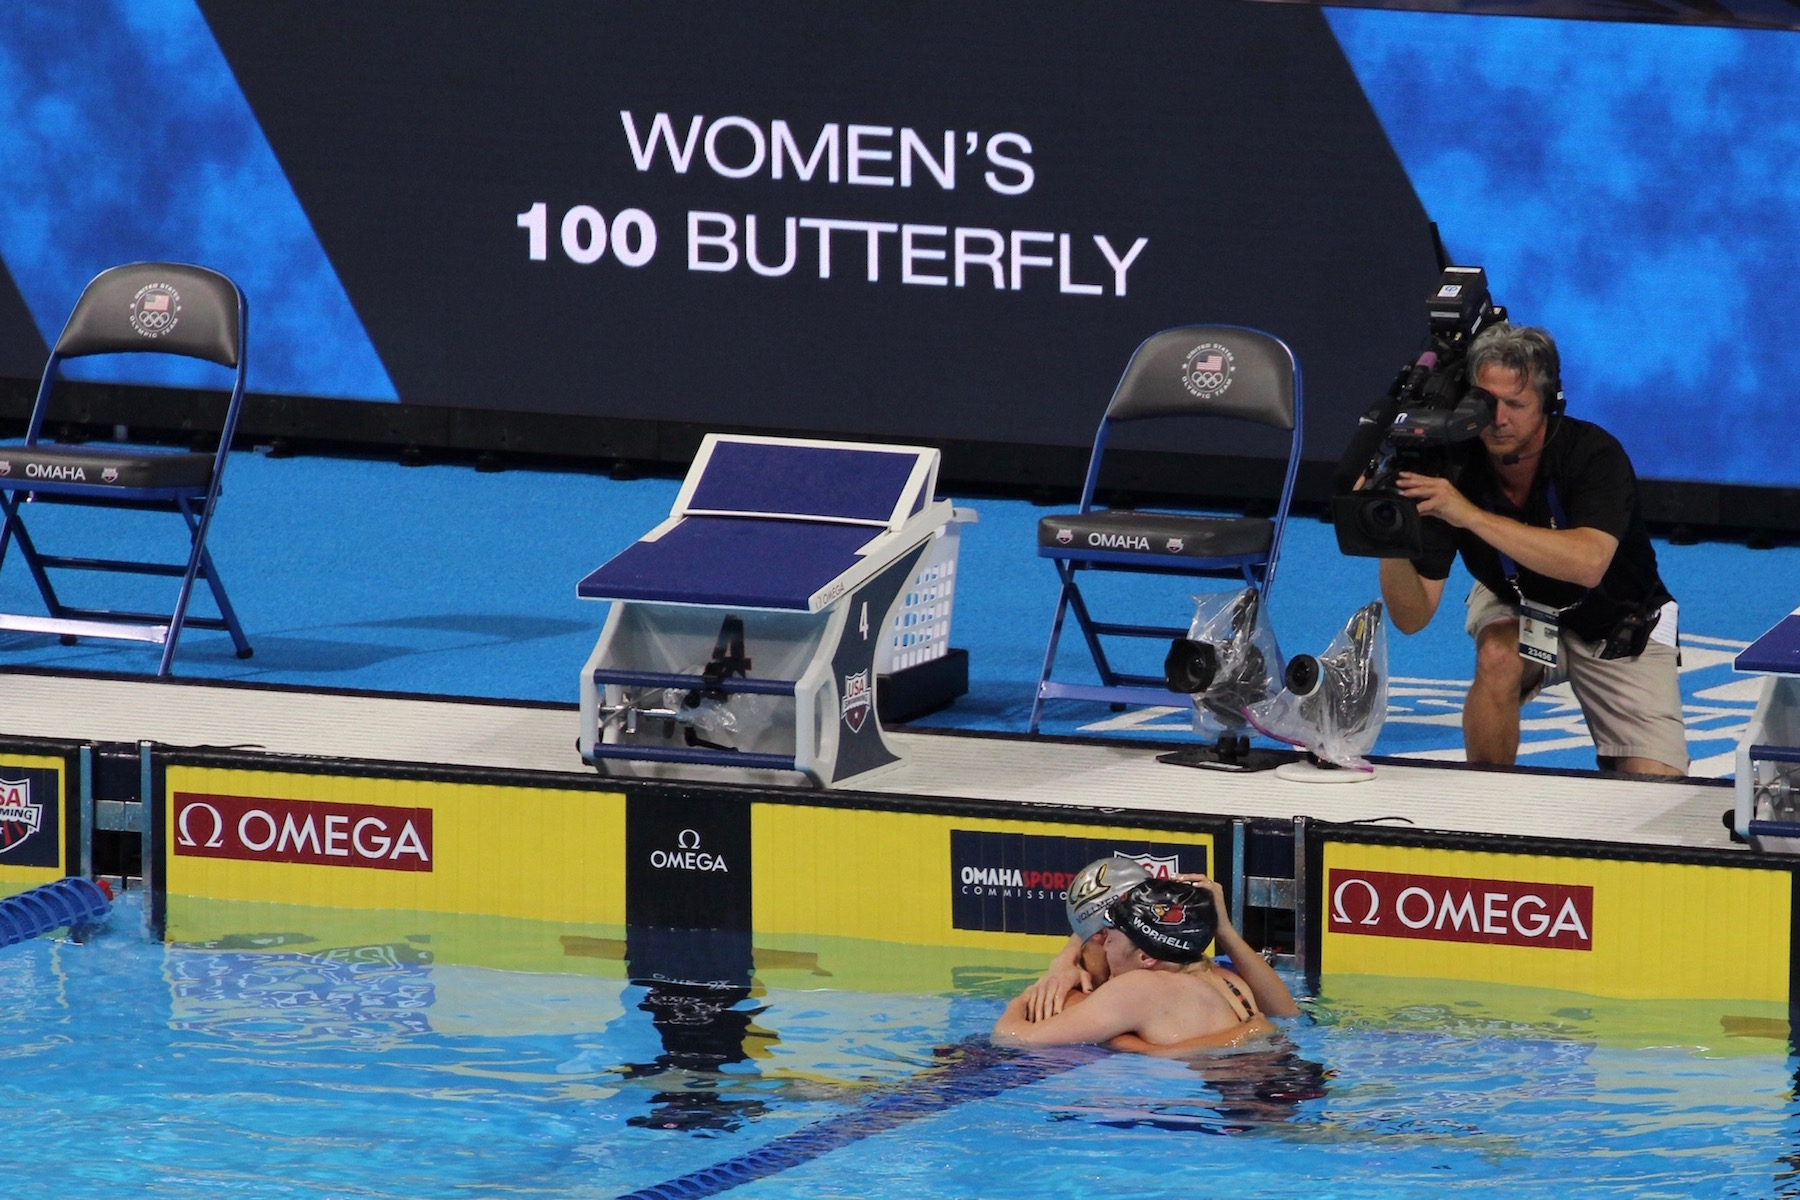 Kelsi Worrell hugs Olympian Dana Vollmer after they both secure spots on the 2016 USA Olympic Team in the 100m Butterfly ( Karl's Instagram )